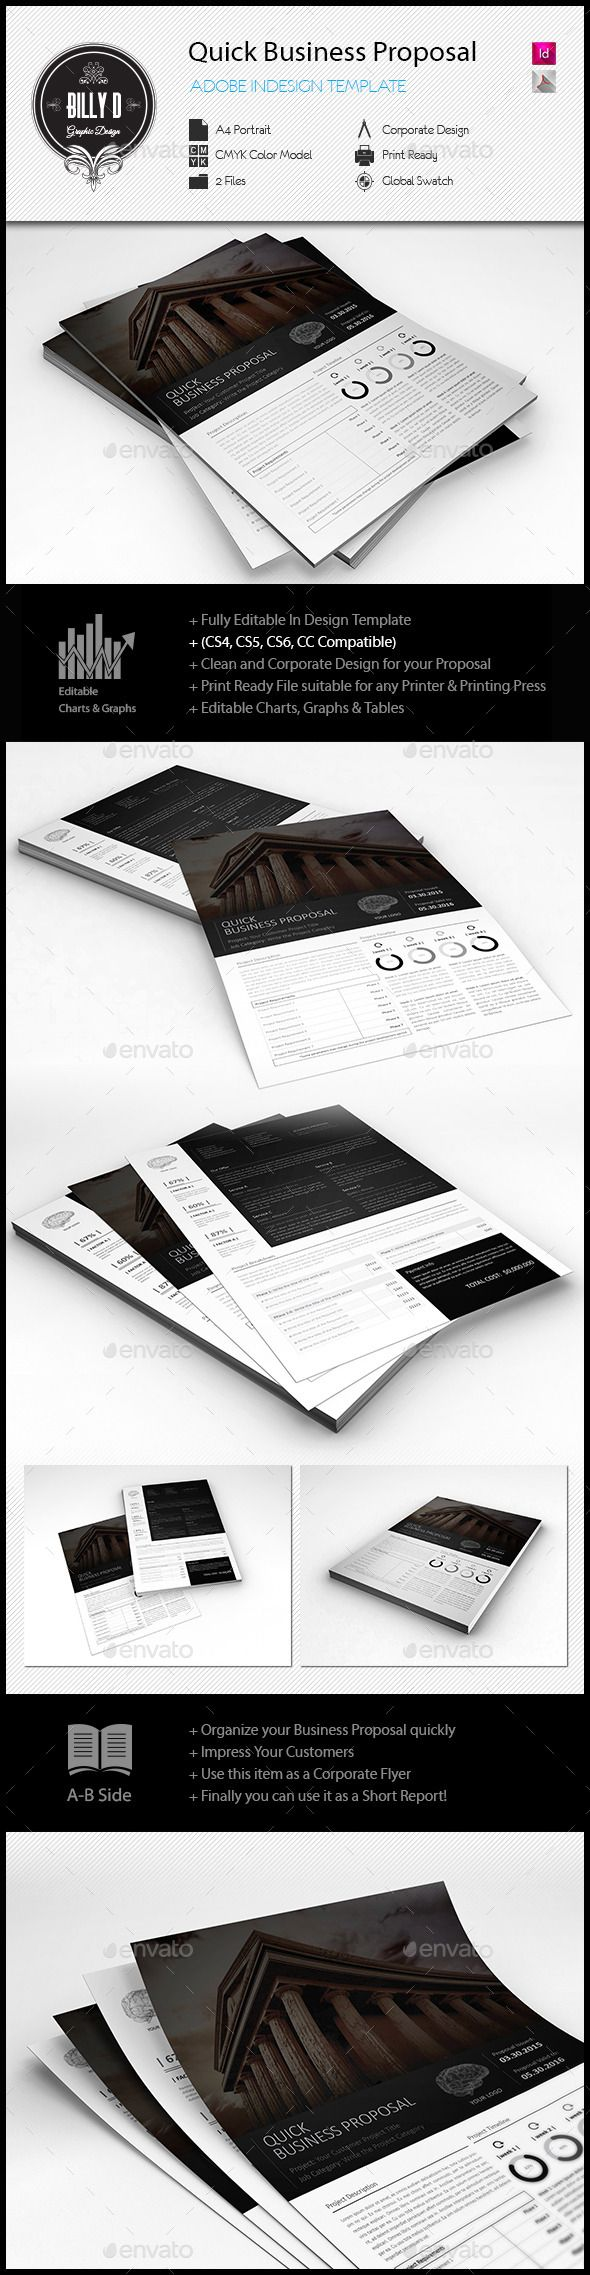 Quick Business Proposal Template Business Proposal Template